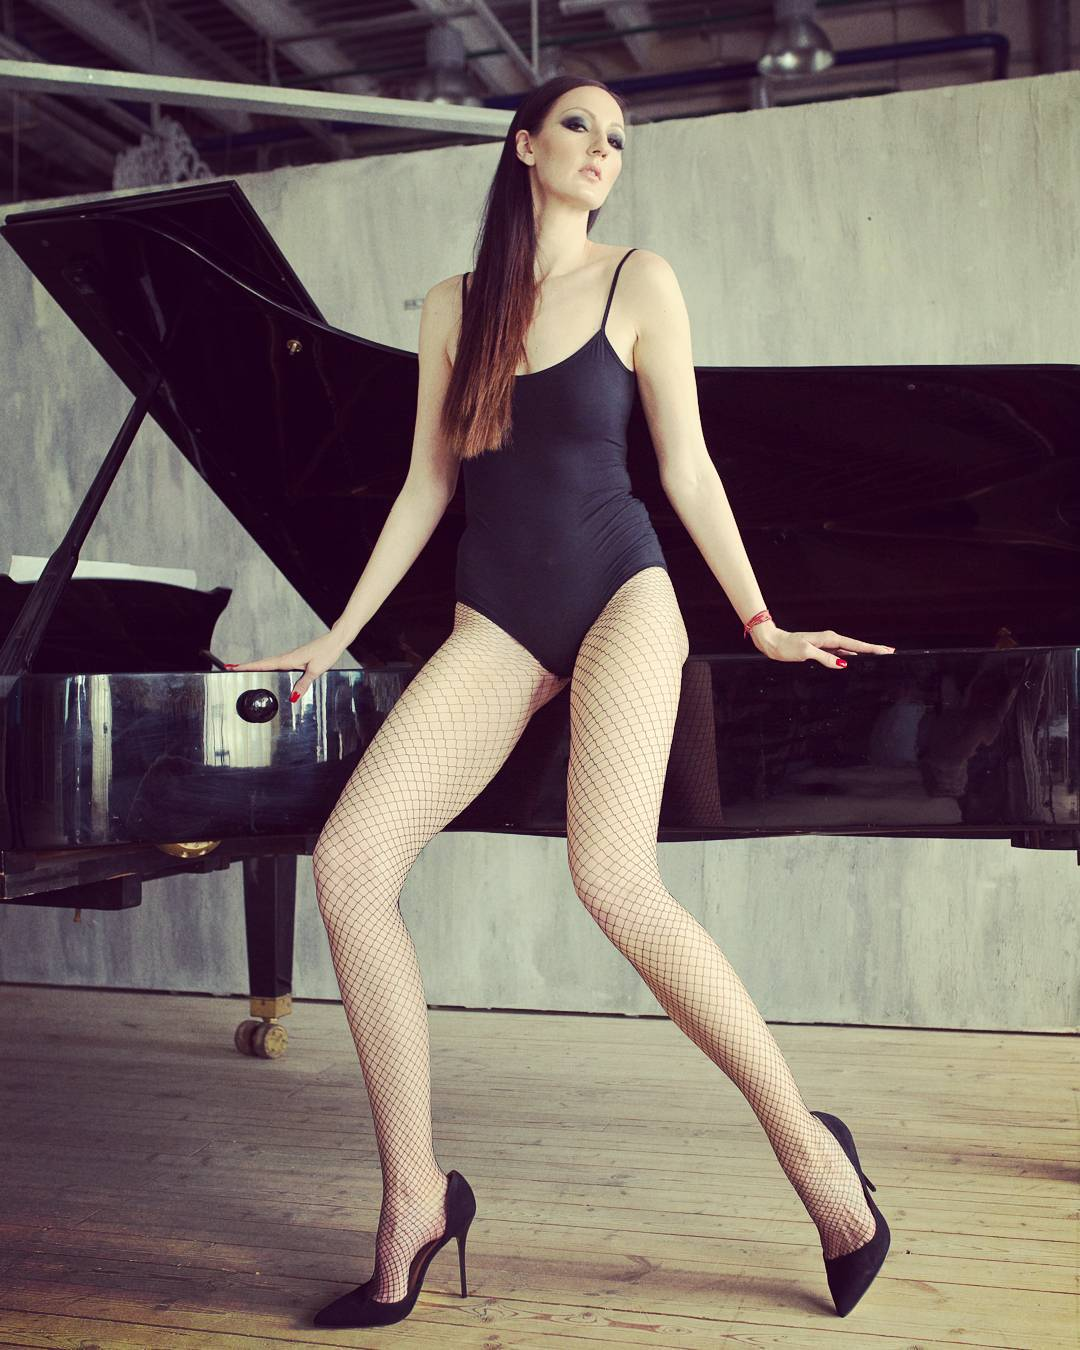 Ekaterina Lisina, World's Tallest Model, Professional Model, Tallest Model